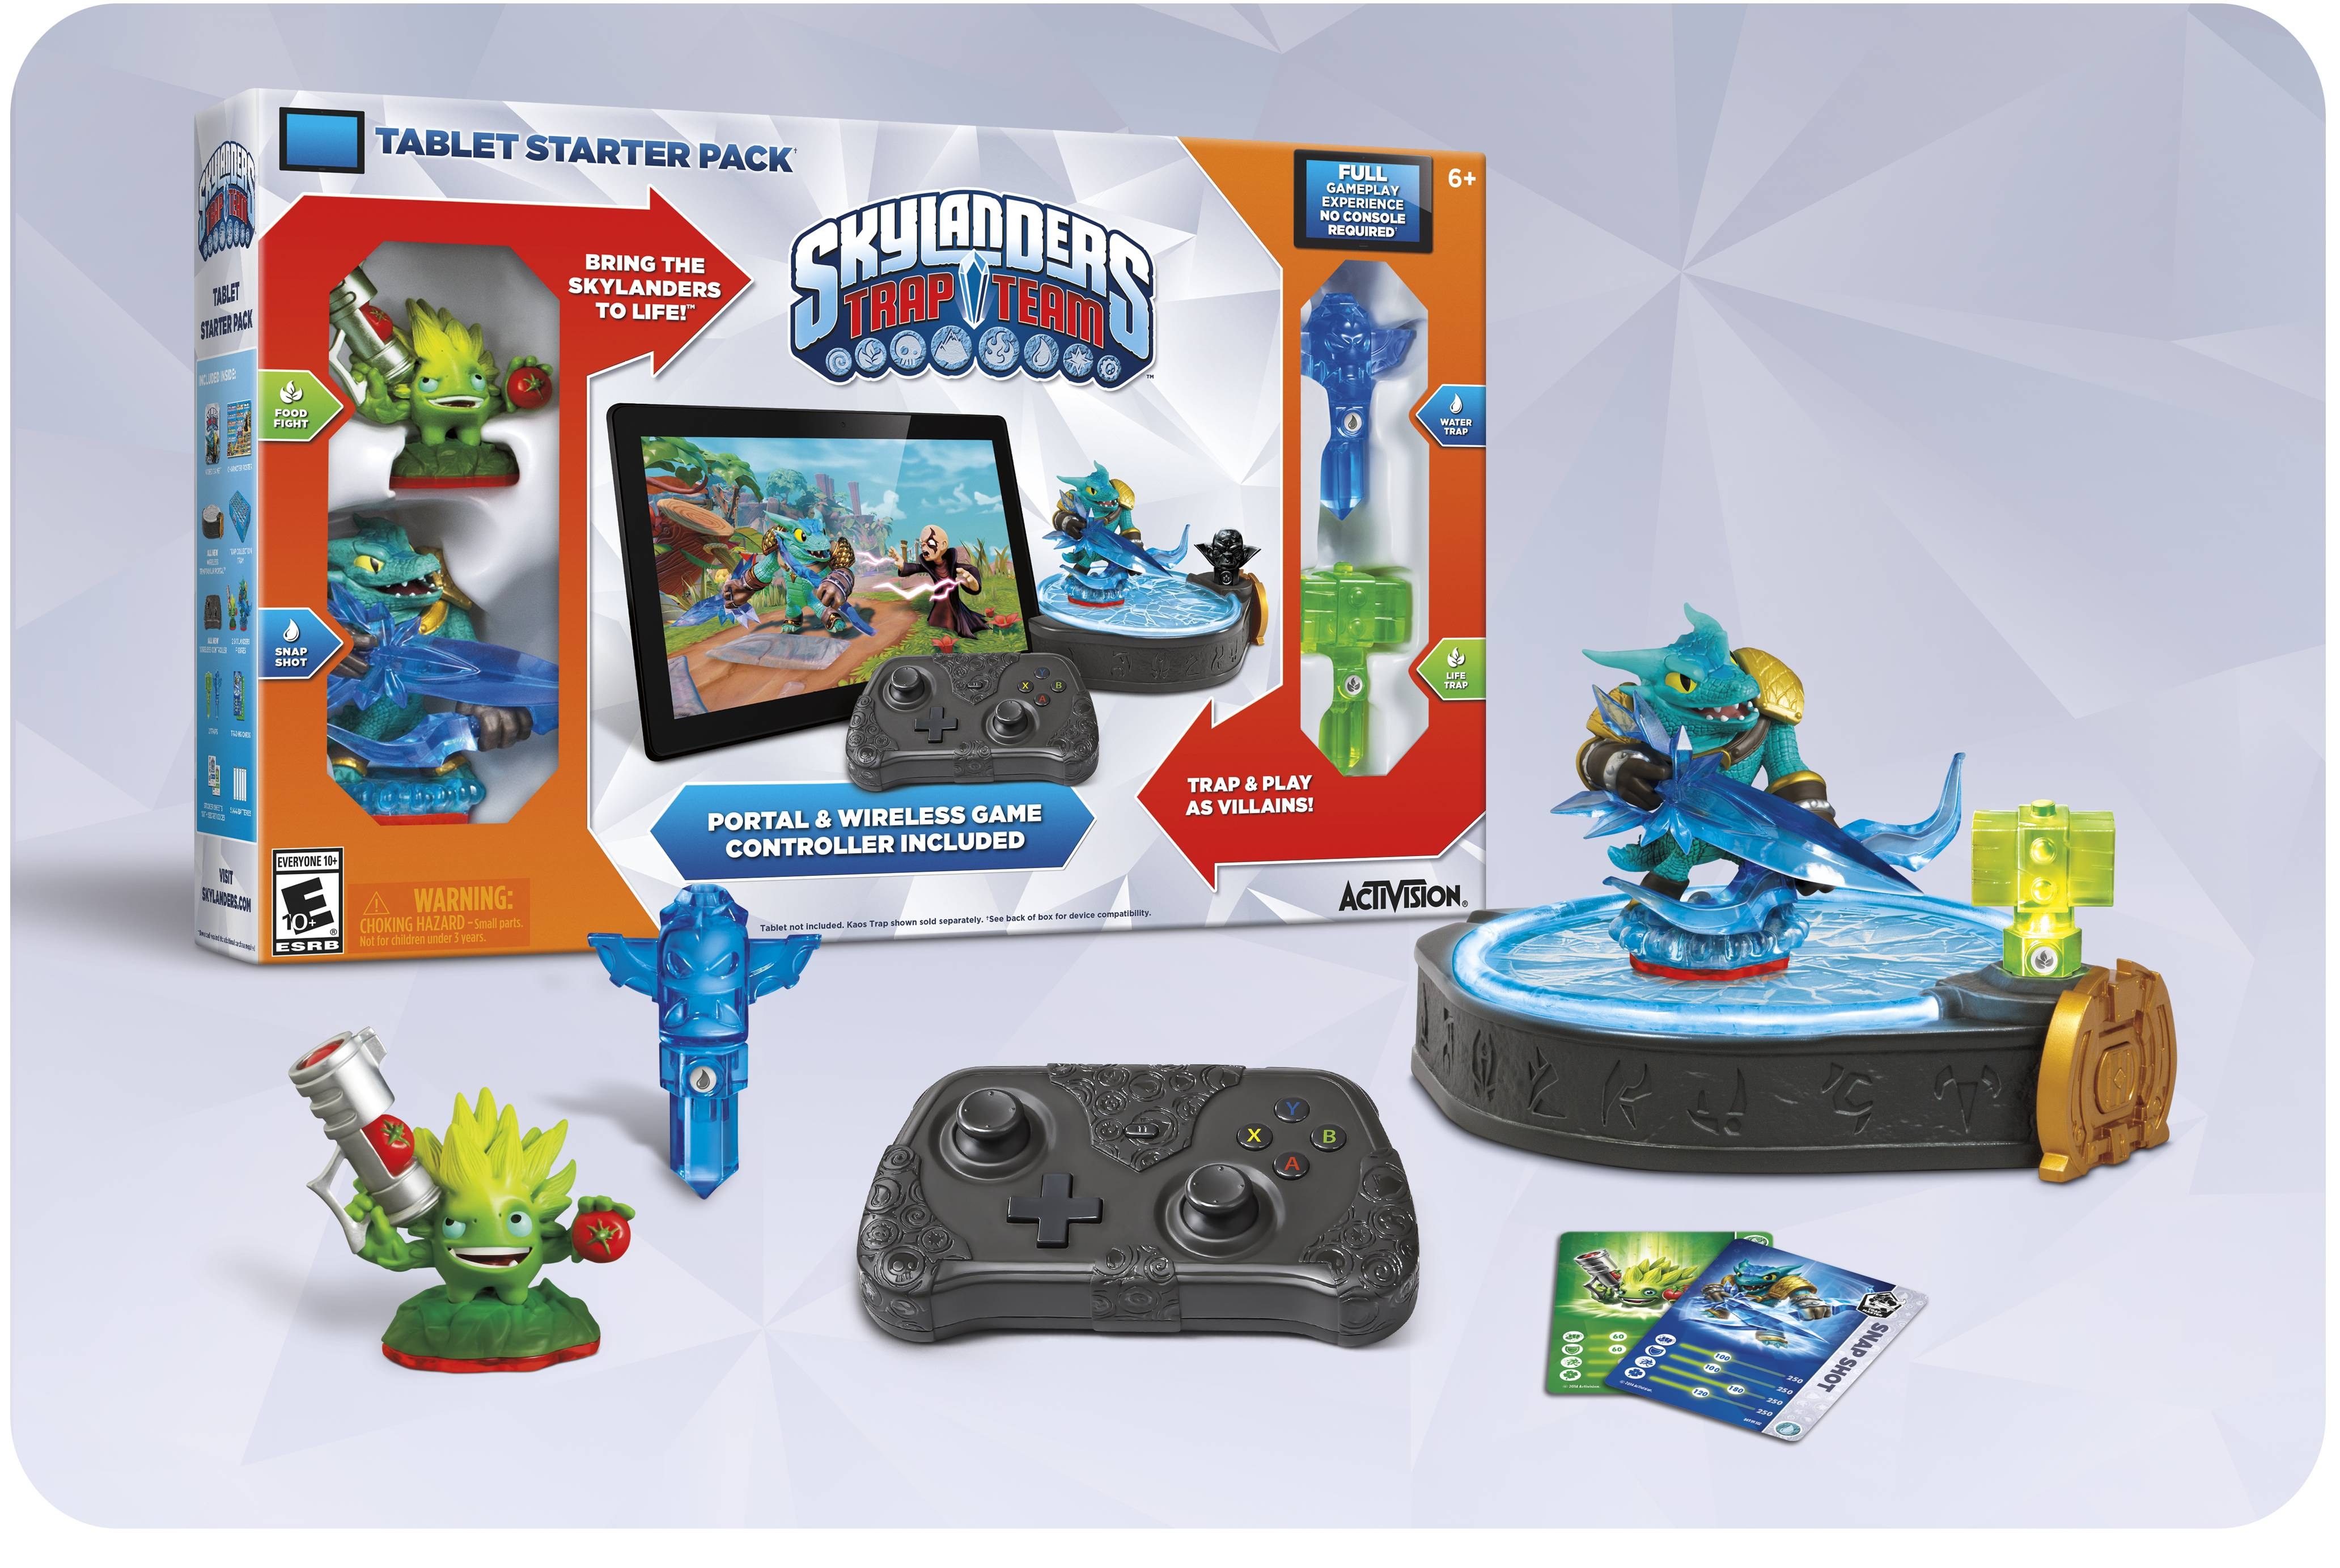 Skylanders Trap Team PlayStation 4, Xbox One, Nintendo Wii U, PlayStation 3, Xbox 360, Nintendo 3DS, iPad, Nintendo Wii, Mobile thumbs